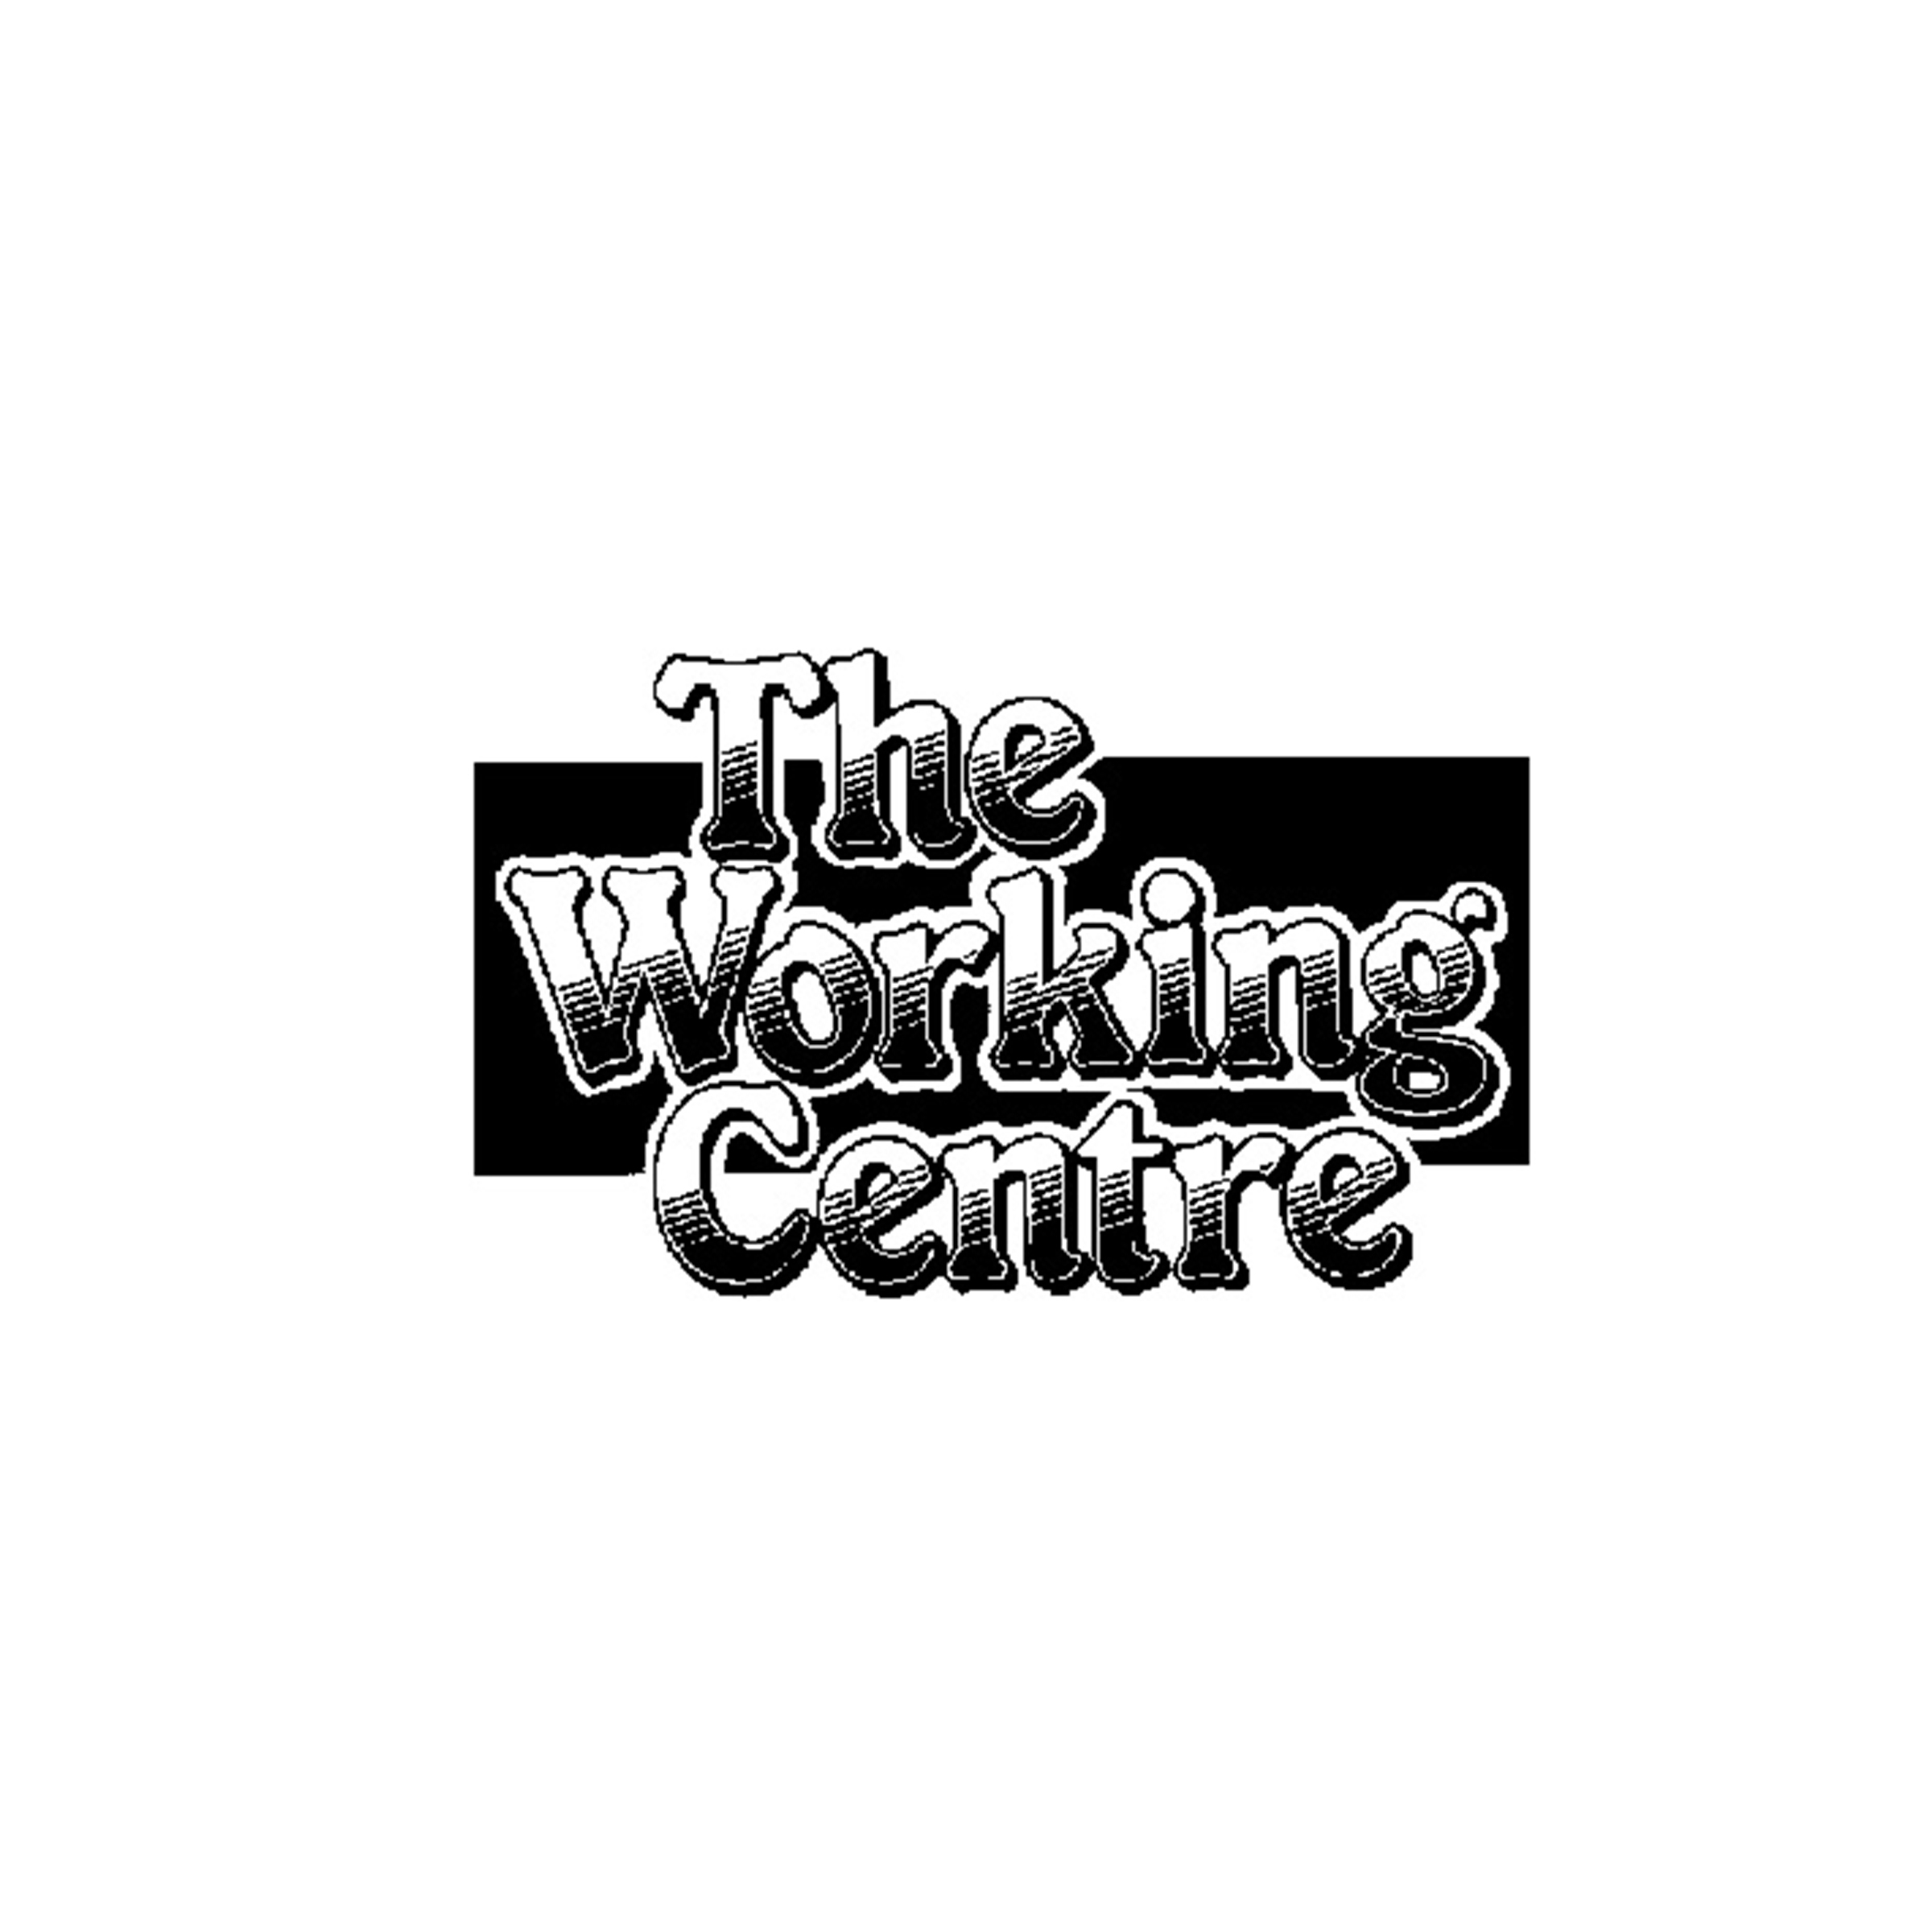 T H E W O R K I N G C E N T R E  Since 1982, The Working Centre has responded to the needs of those experiencing poverty and unemployment by developing collaborative, innovative and practical projects. The Working Centre is a volunteer inspired venture that seeks to give individuals and groups access to tools and opportunities to become involved in the building of community.